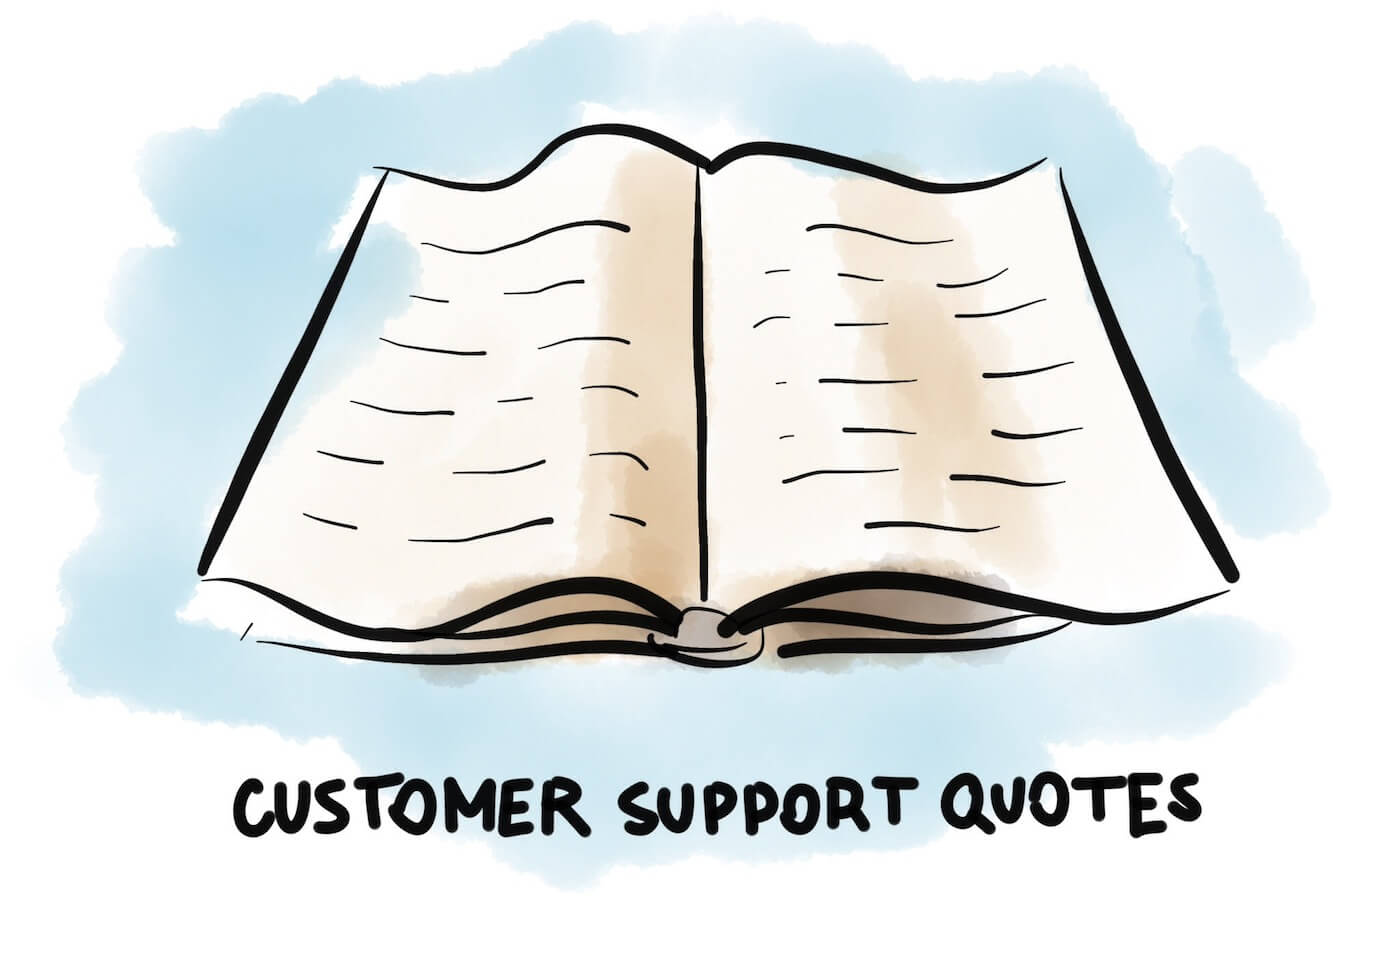 Customer Support Quotes To Understand Customers Mindset